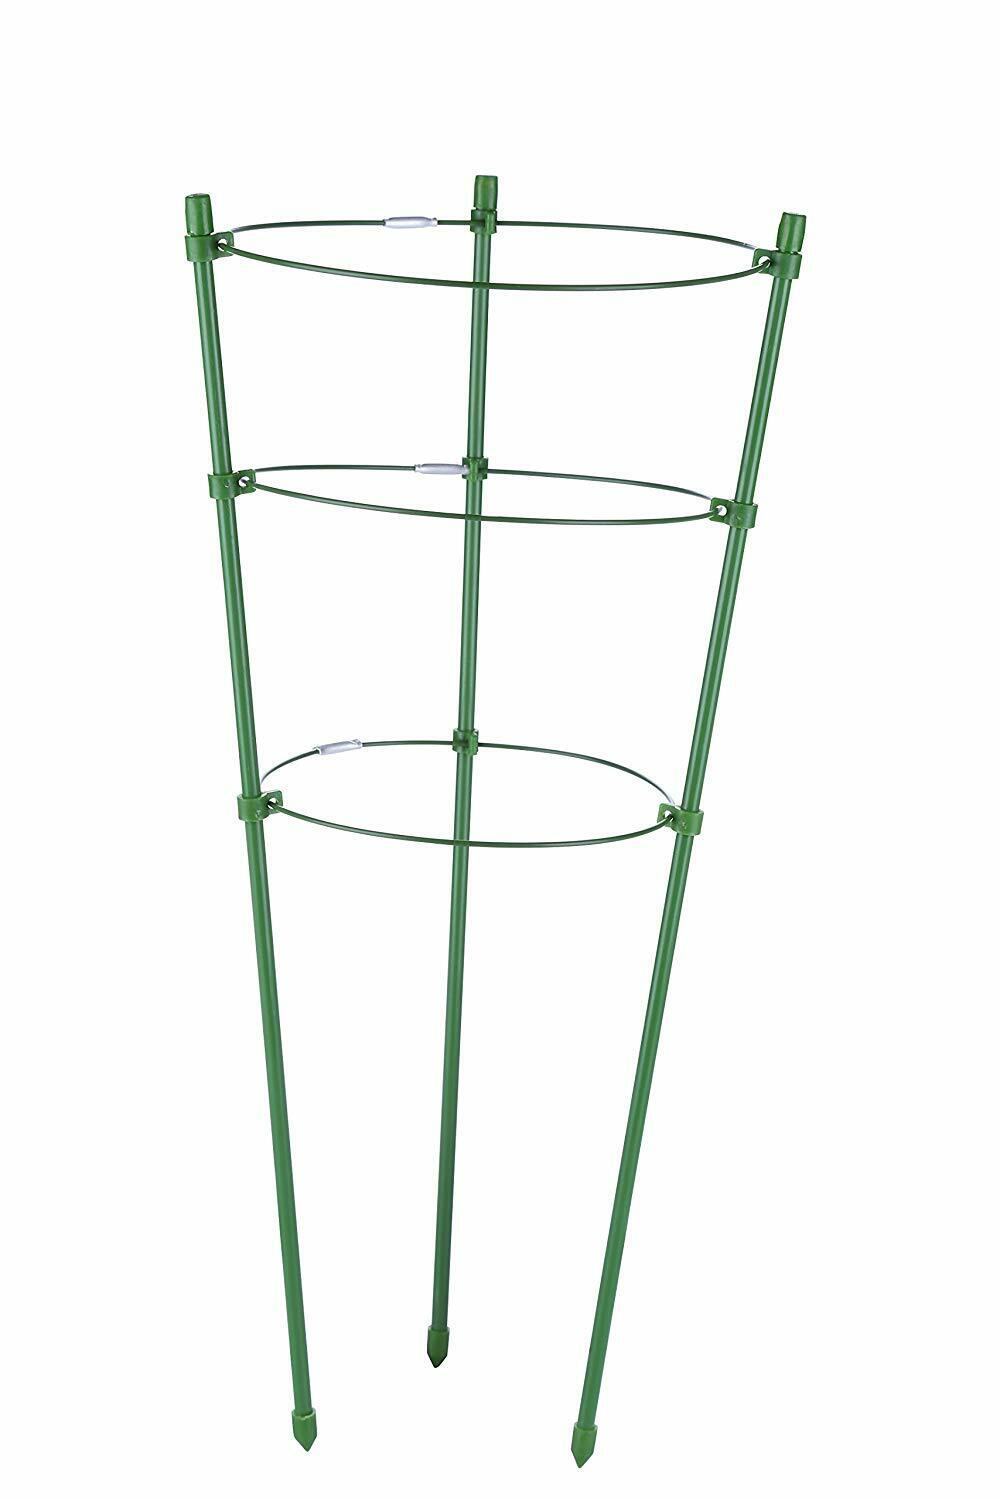 Tomato and Plant Support Cage, Stakes, Trellis, Gardening Climbing Growing Cages 6